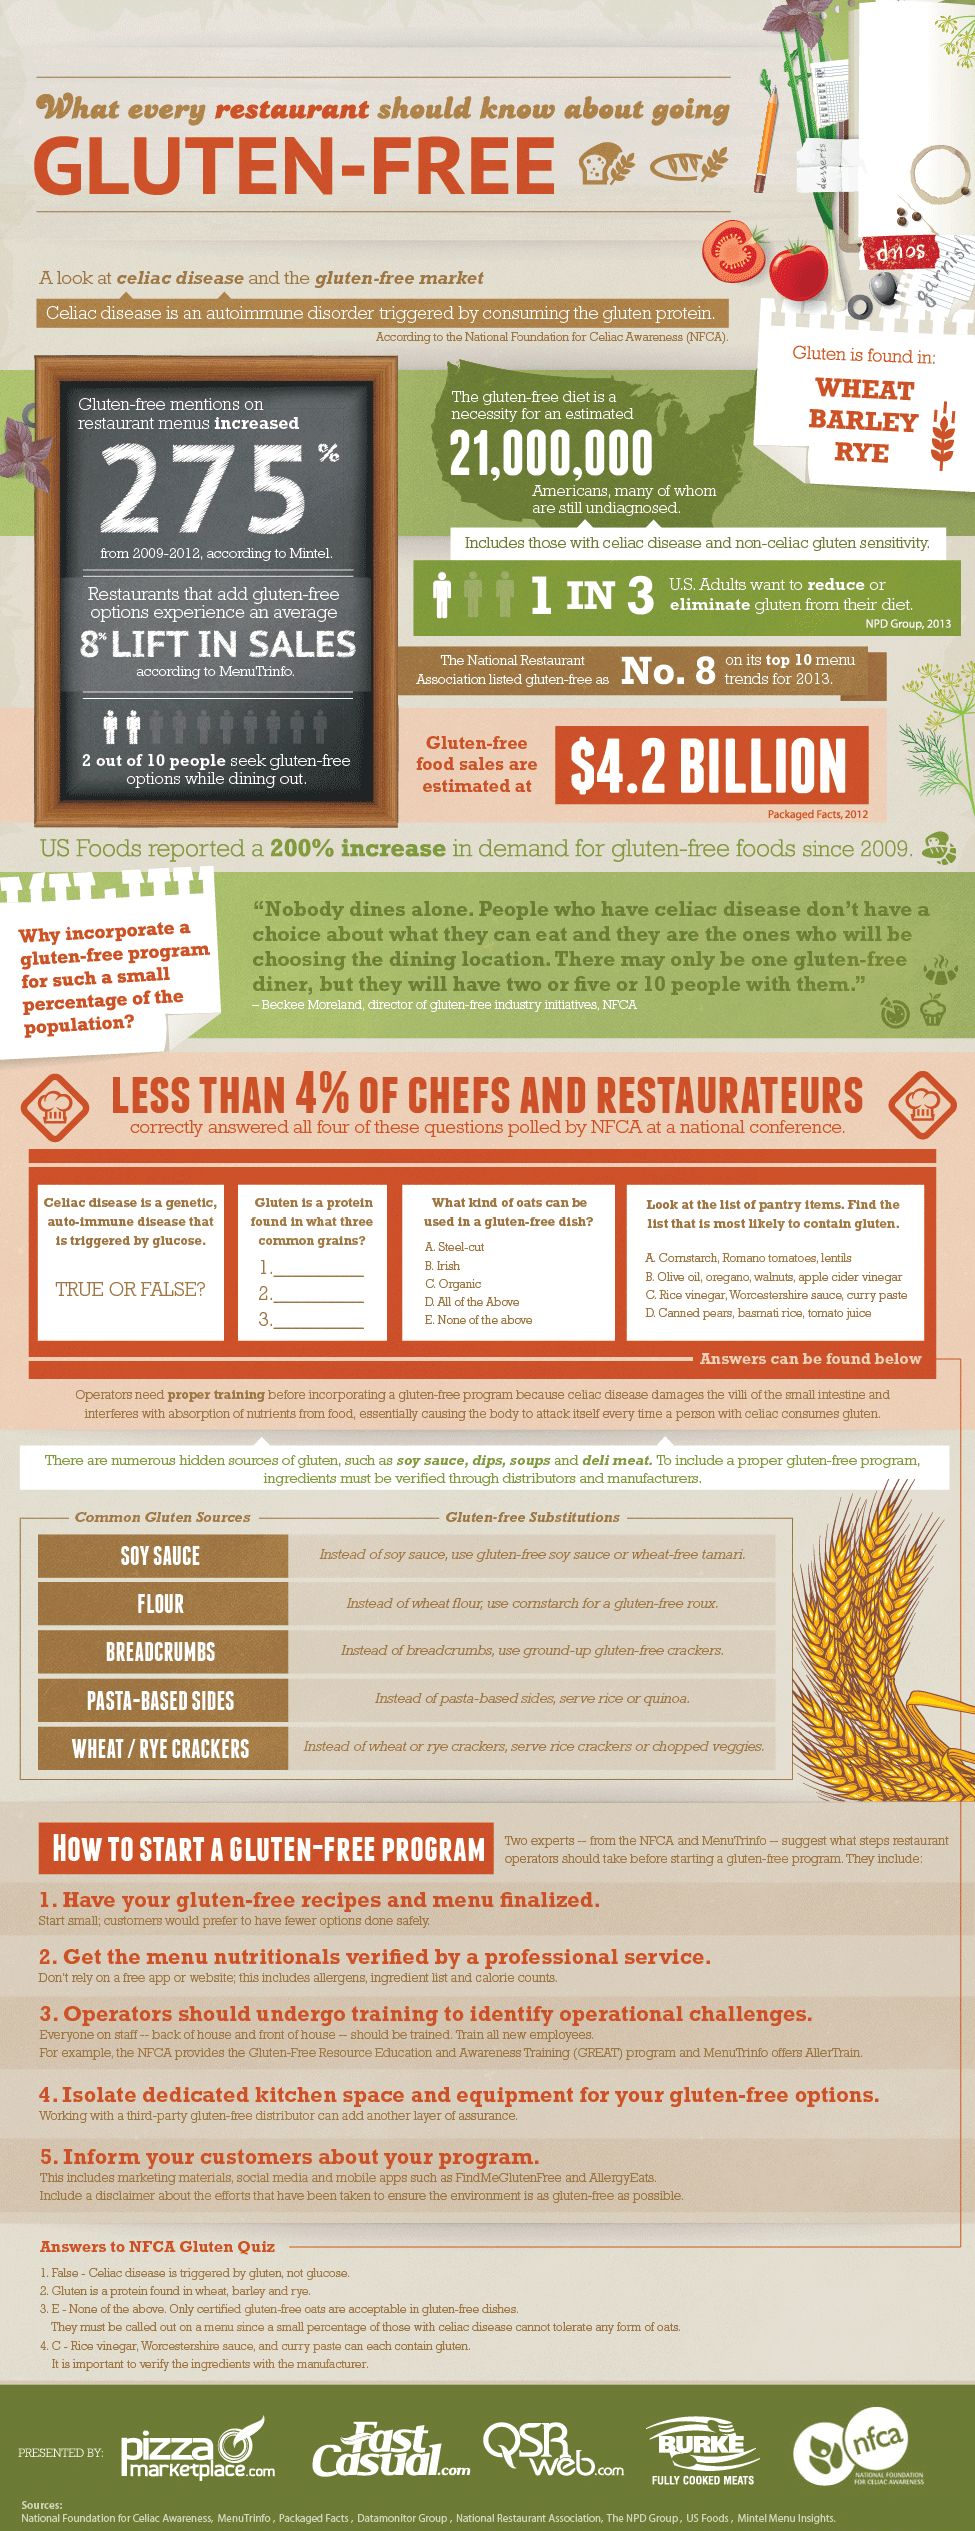 What every restaurant operator should know about going gluten-free [Infographic]